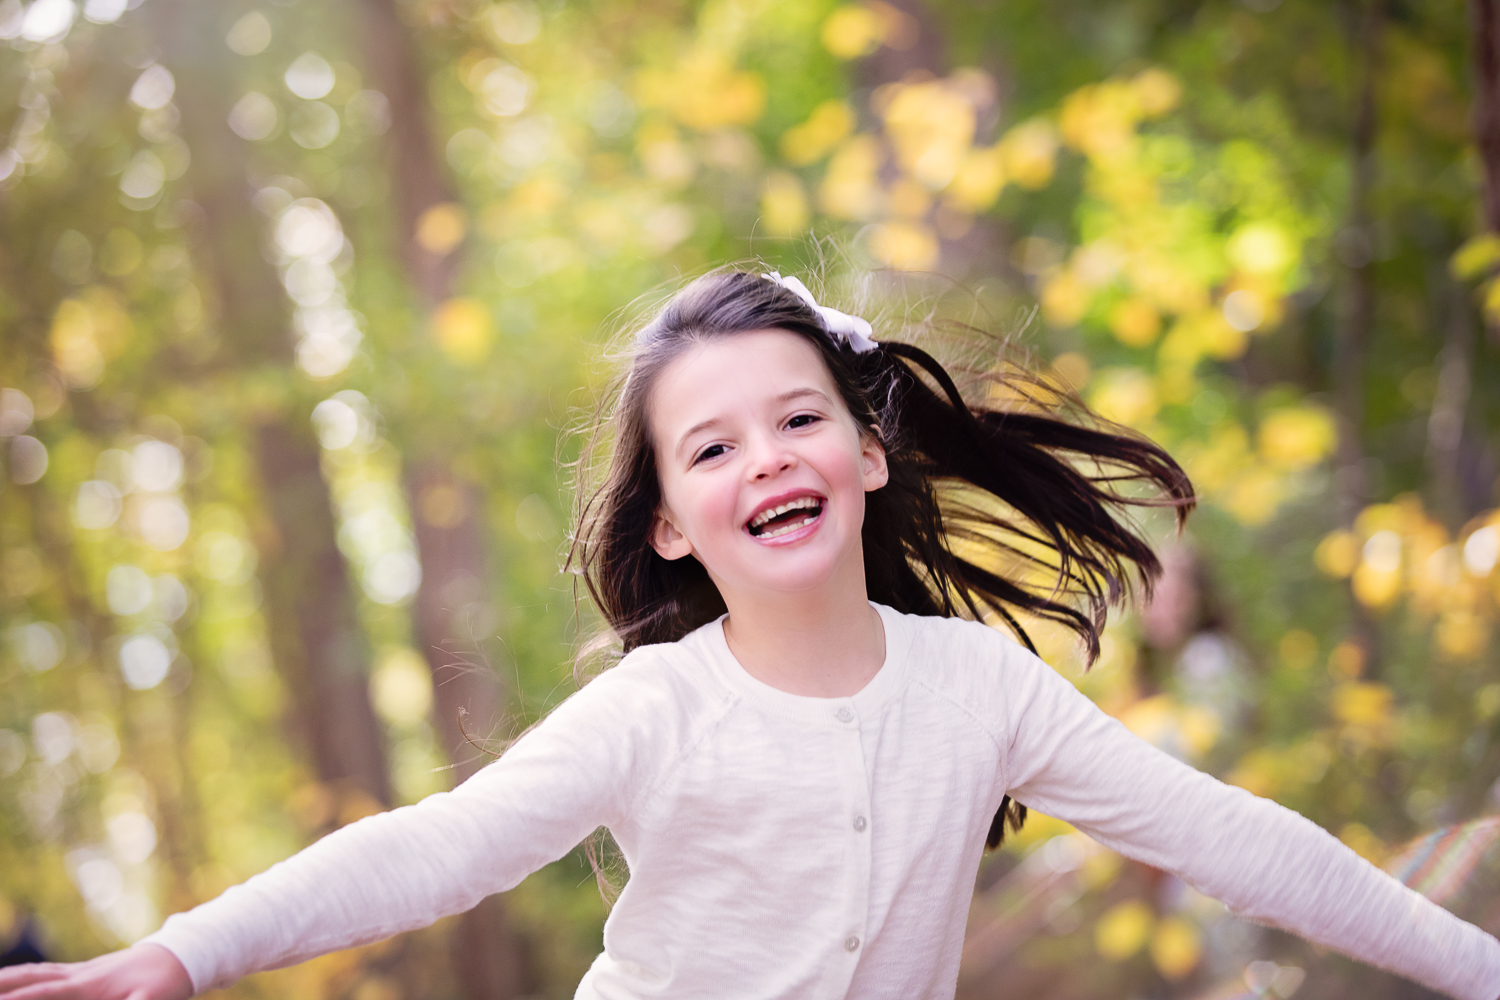 Fall photo of a little girl running and laughing under the trees